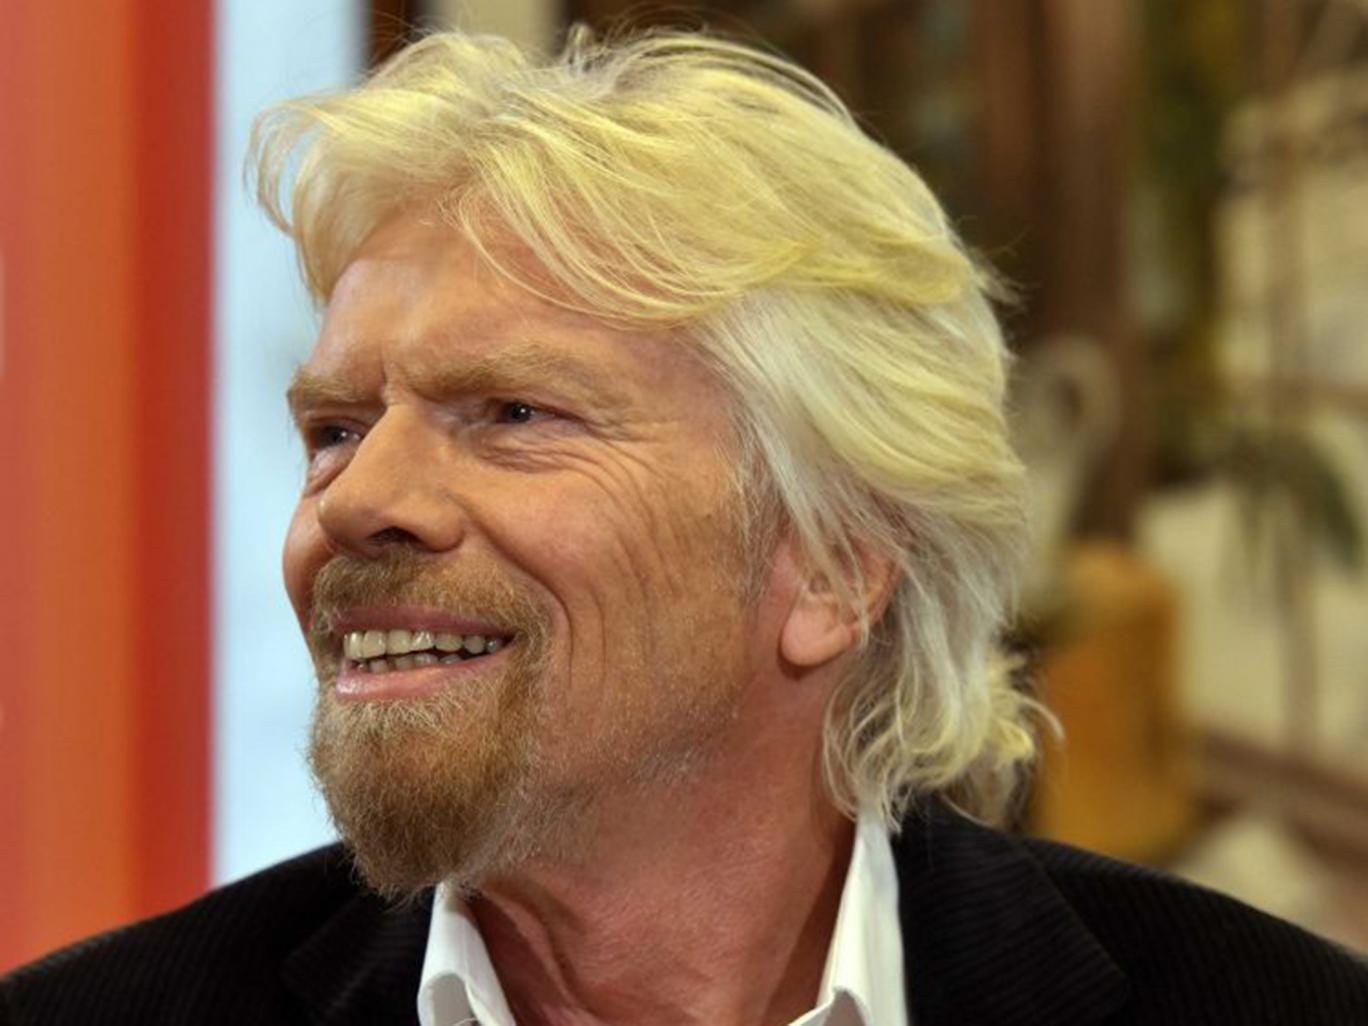 richard branson - photo #35